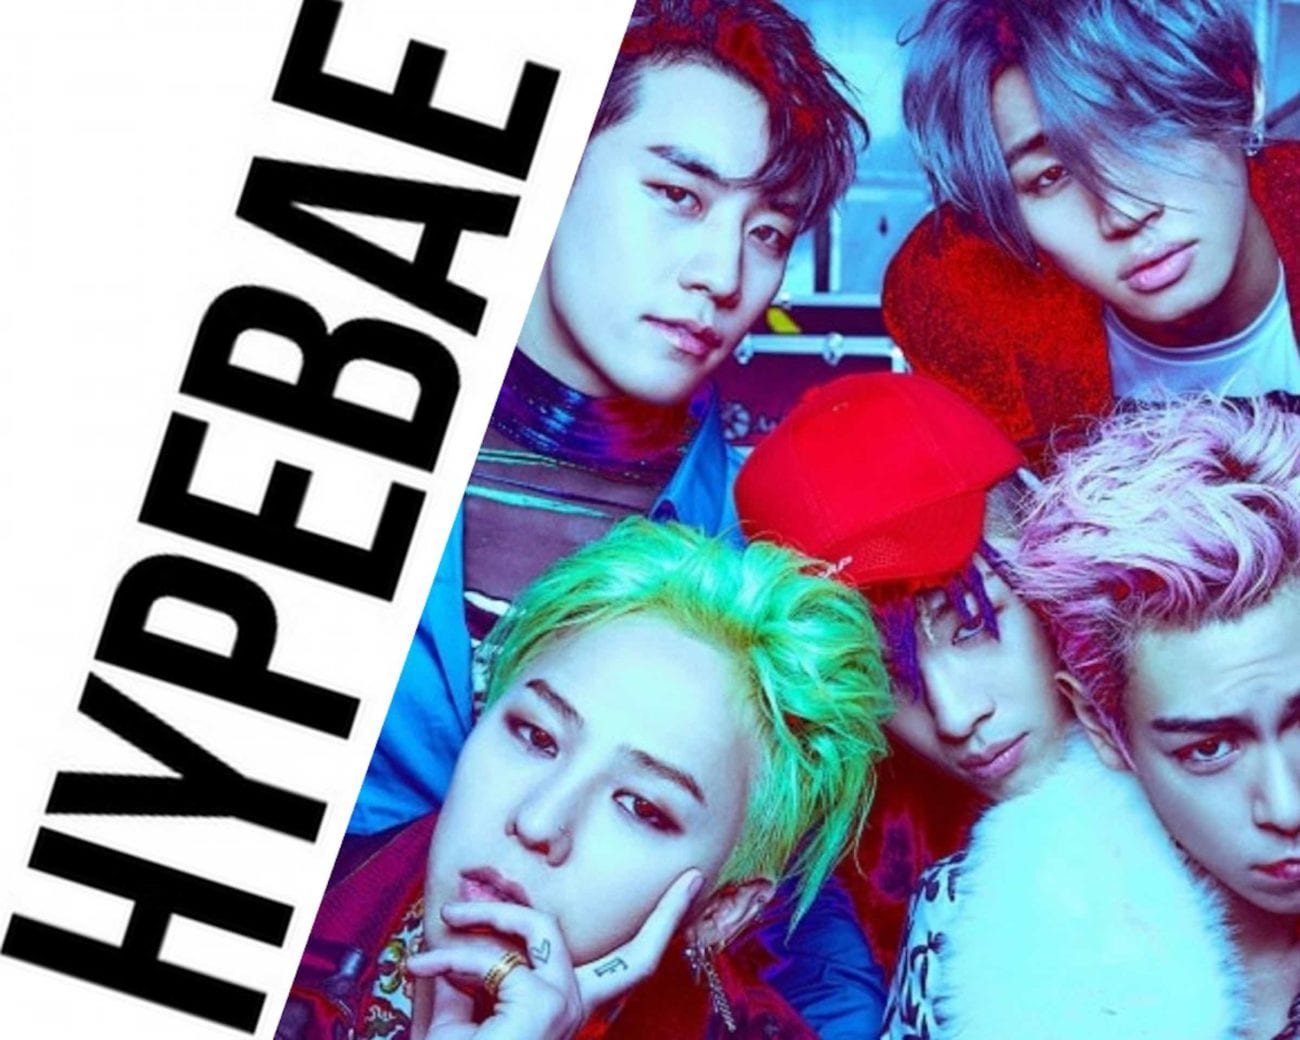 You'd think news outlets would learn not to mess with K-pop fans, yet Hypebae is learning the lesson the hard way. Here's what we know.